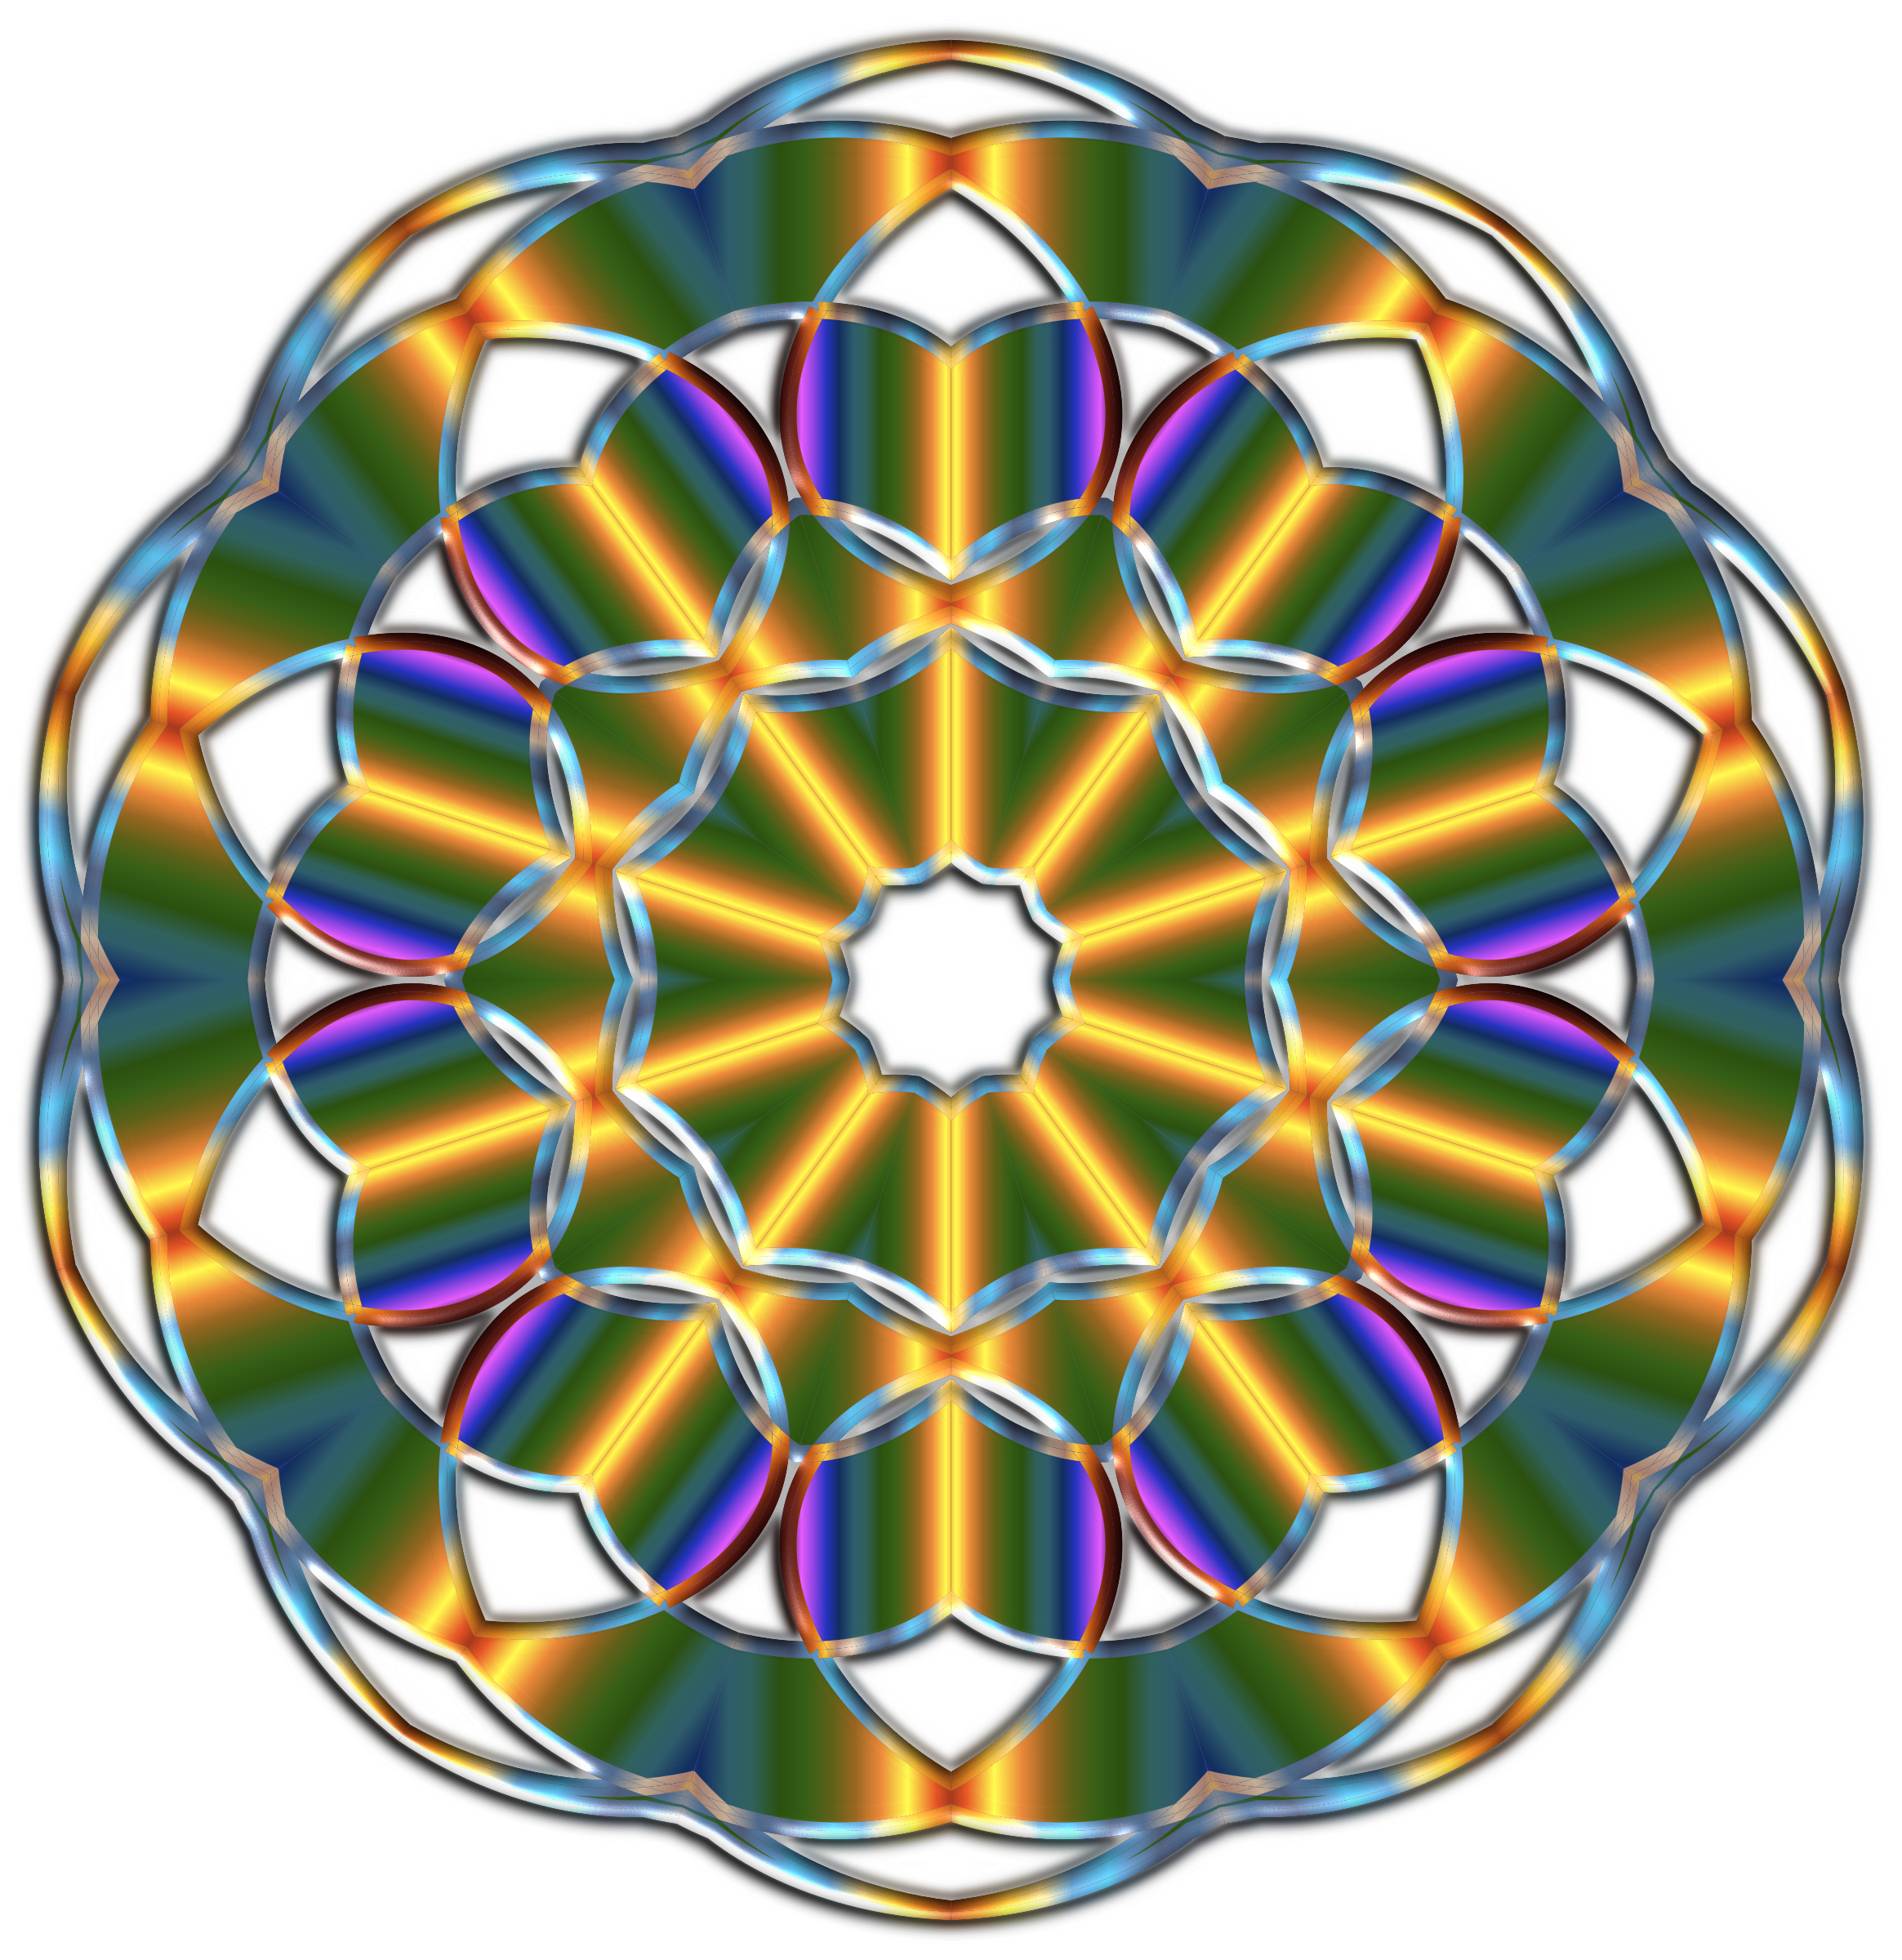 Iridescent Mandala by GDJ